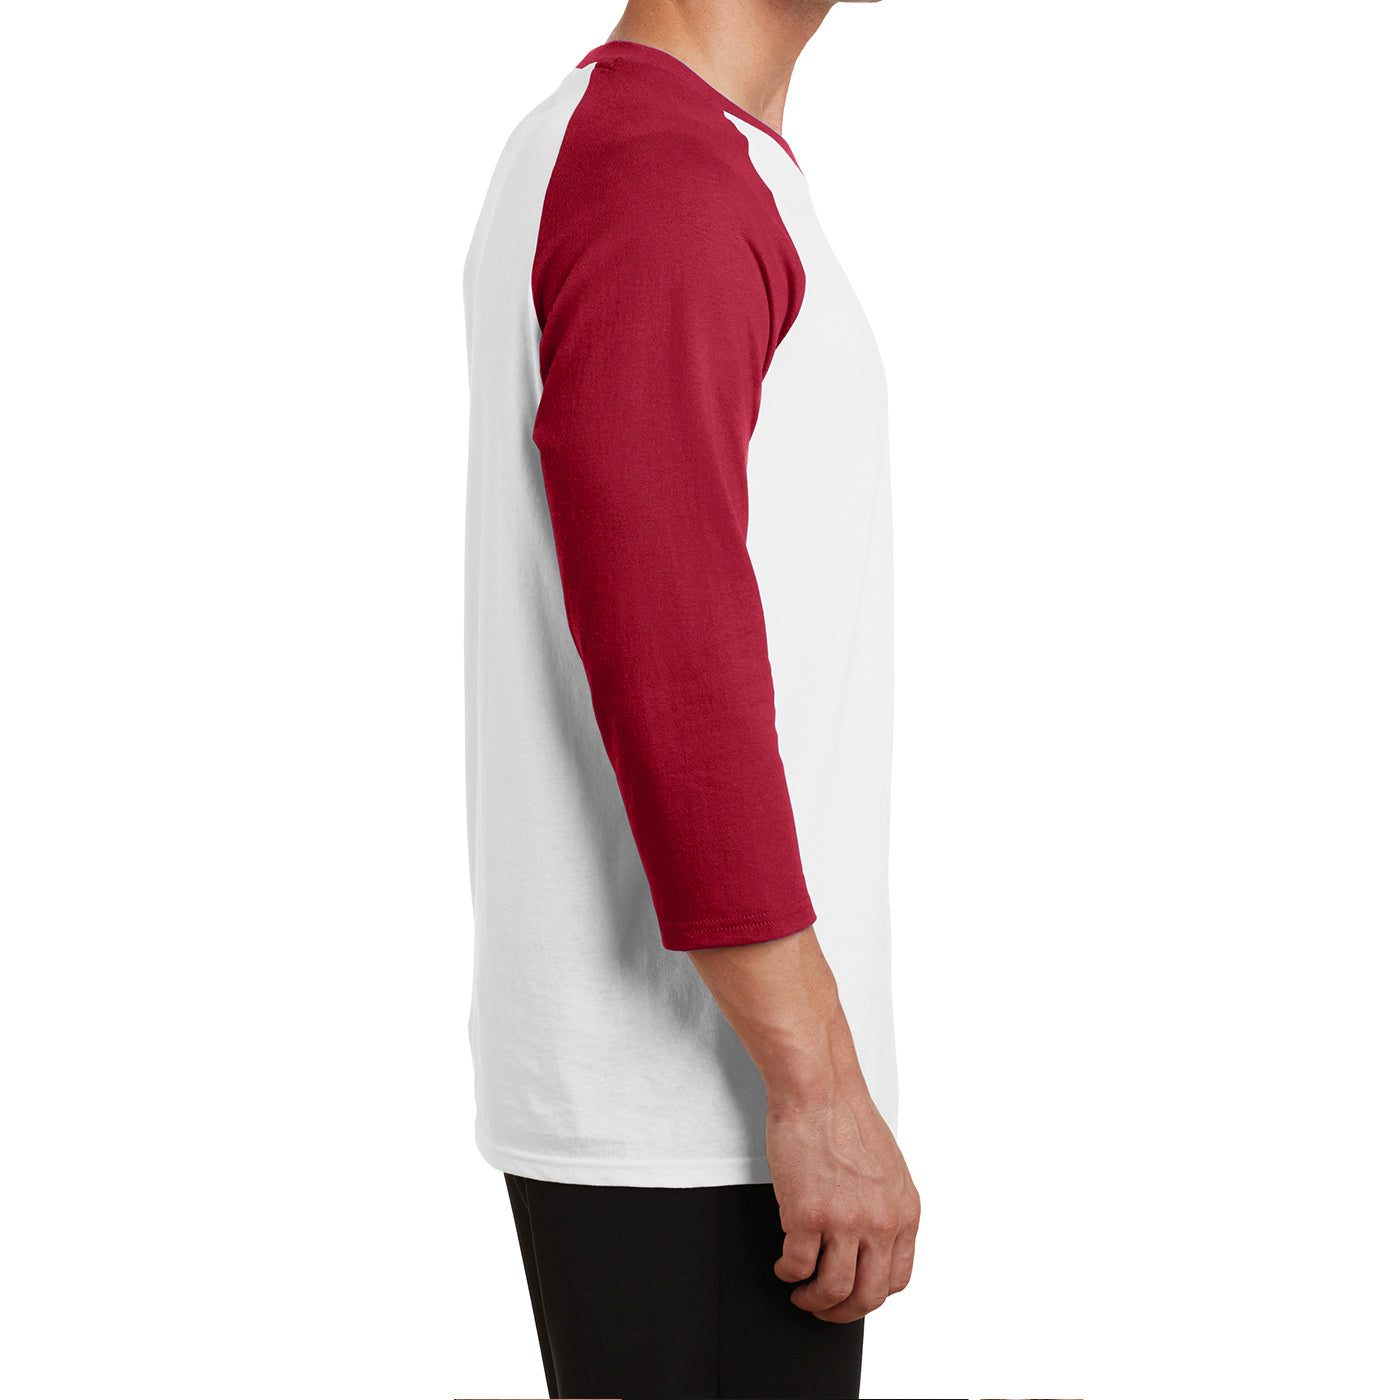 Men's Core Blend 3/4-Sleeve Raglan Tee - White/ Red - Side